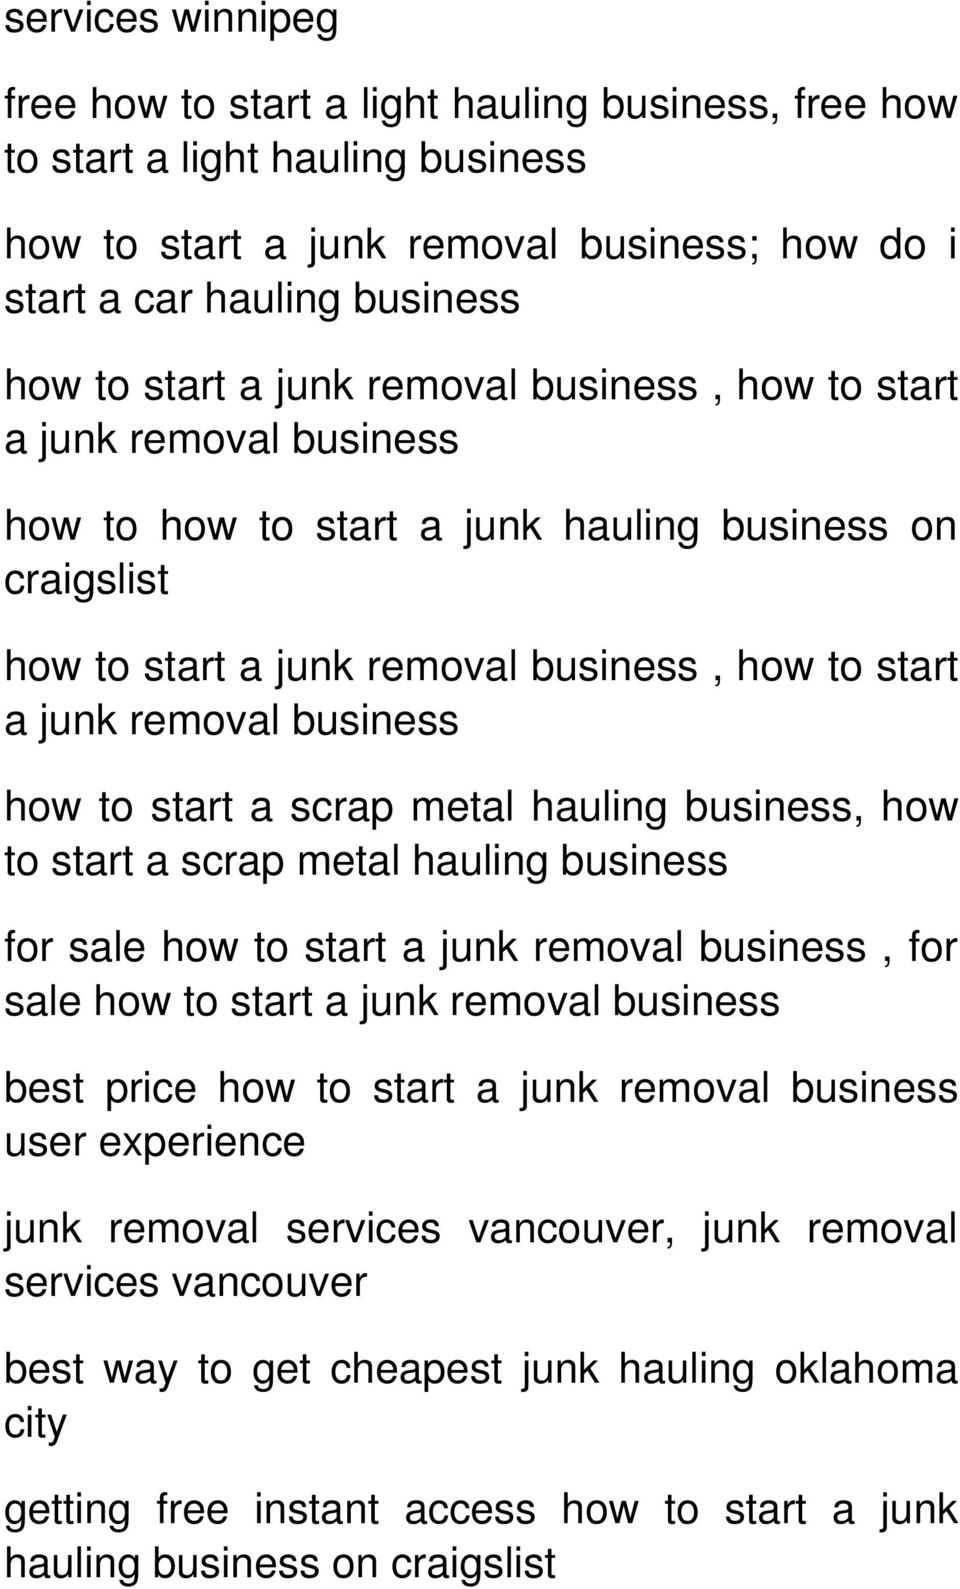 How to Start a Junk Removal Business User Review --->> Click